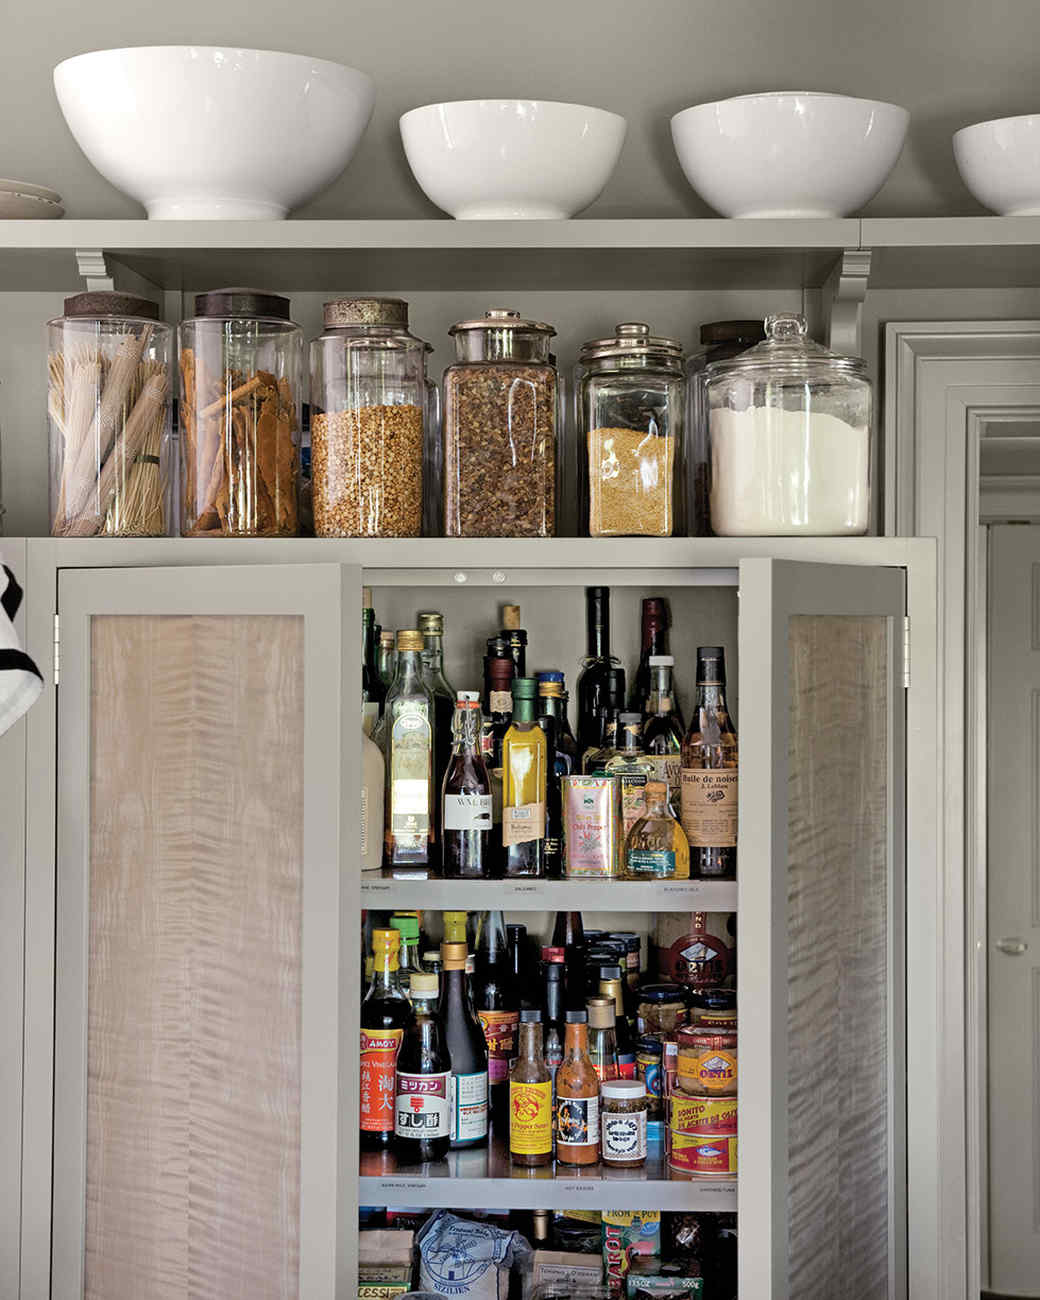 martha's 50 top kitchen tips | martha stewart